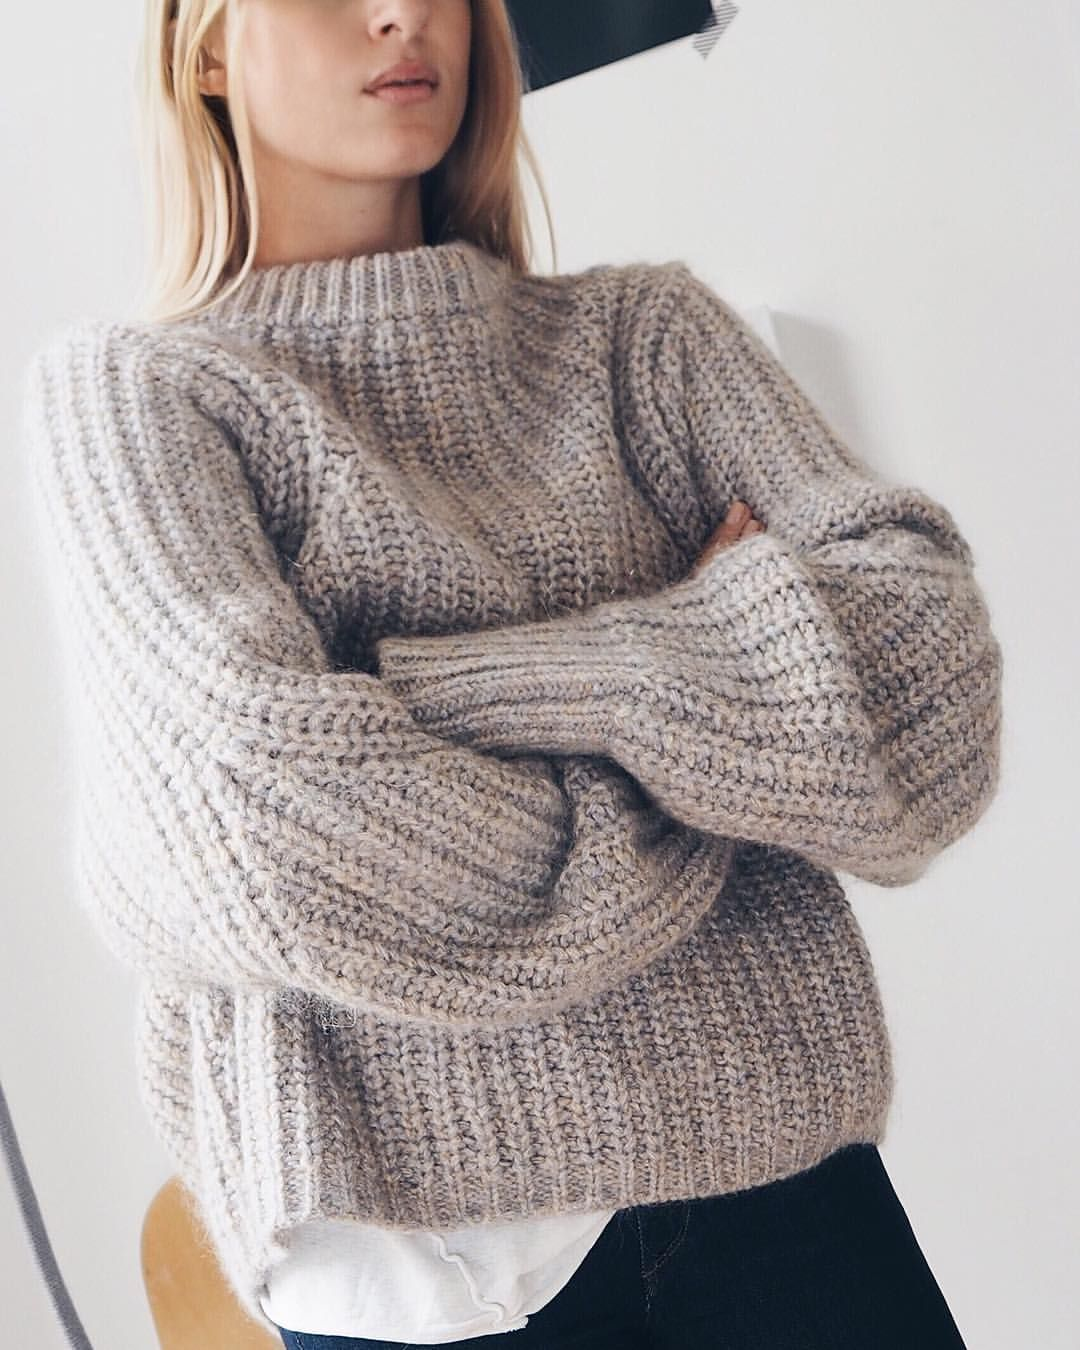 distrib-ah3euse9.tk: oversized cable knit sweater. PRODUCT: *This knit jumper is a VERABENDI Women's Plus Size Oversized Long Crop Top Loose Pullover Knit Sweater Tunics. by VERABENDI. Dearlove Women Open Front Chunky Knit Cardigan Sweaters Loose .